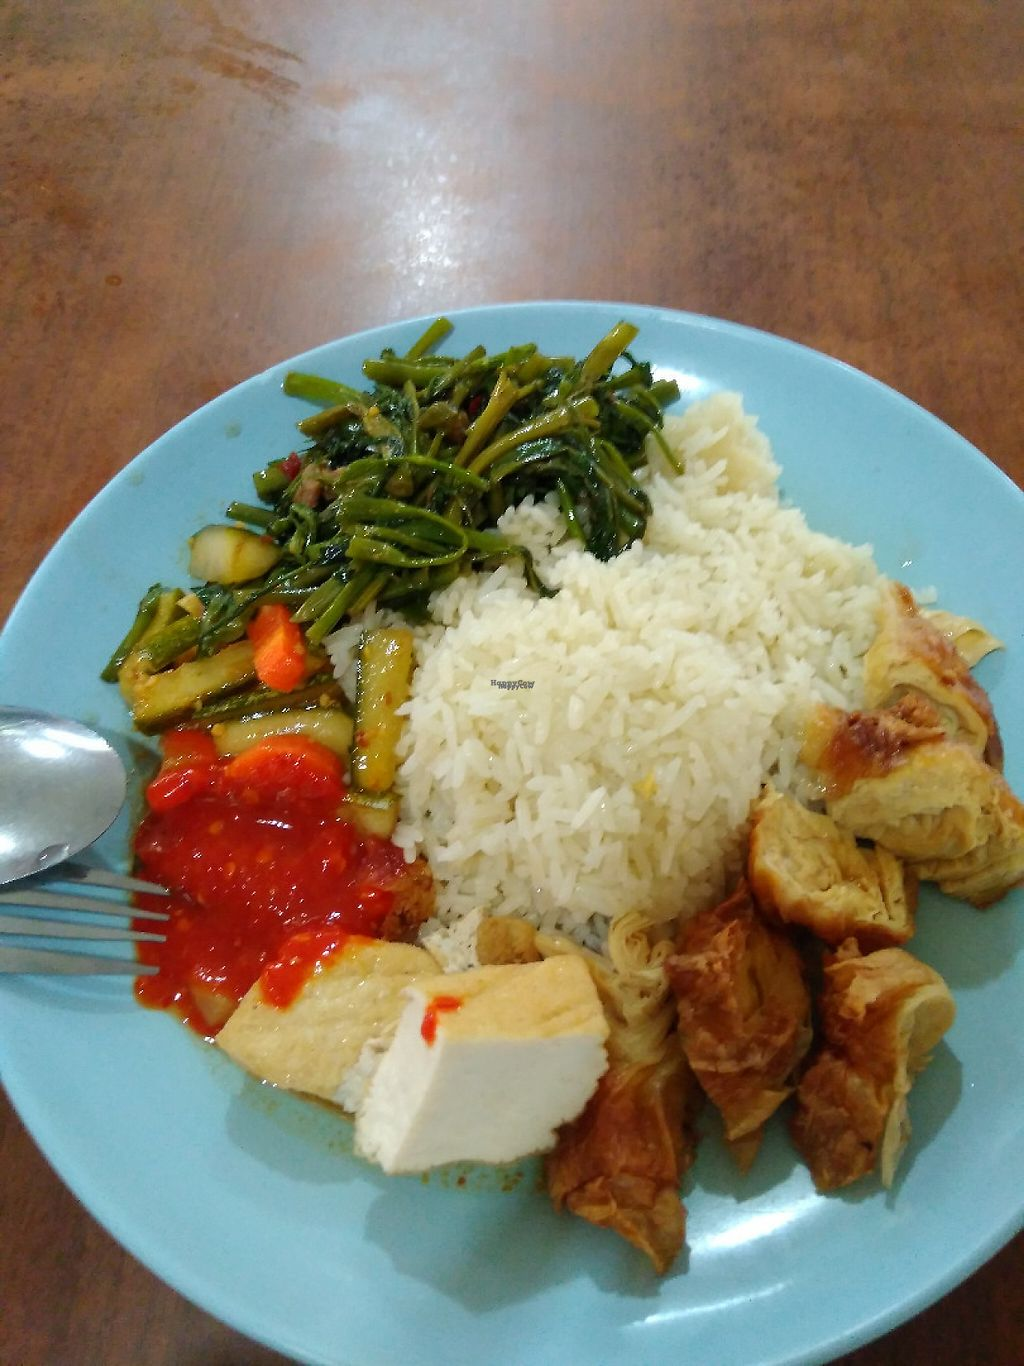 "Photo of Su Yuan Vegetarian Food  by <a href=""/members/profile/RichardLee"">RichardLee</a> <br/>Vegetarian Chicken Rice with added Kangkong vegetables @$3.50 <br/> January 12, 2017  - <a href='/contact/abuse/image/83880/211258'>Report</a>"